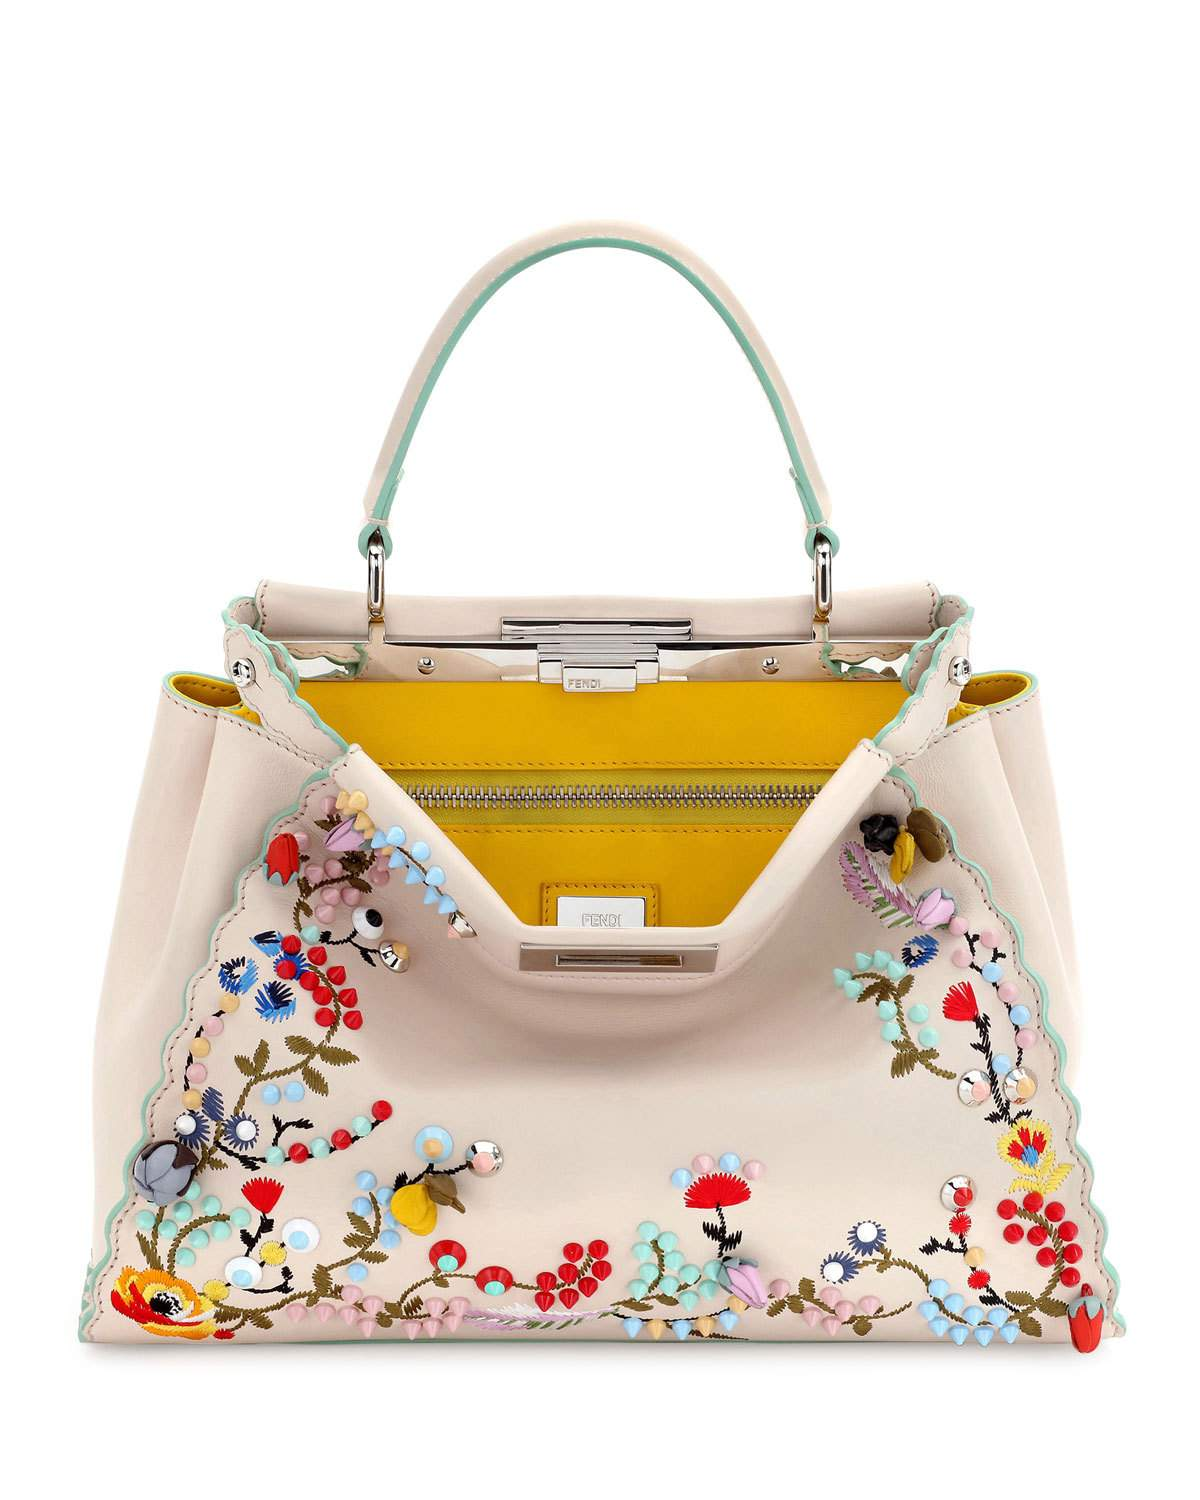 How To Design Handbags At Home